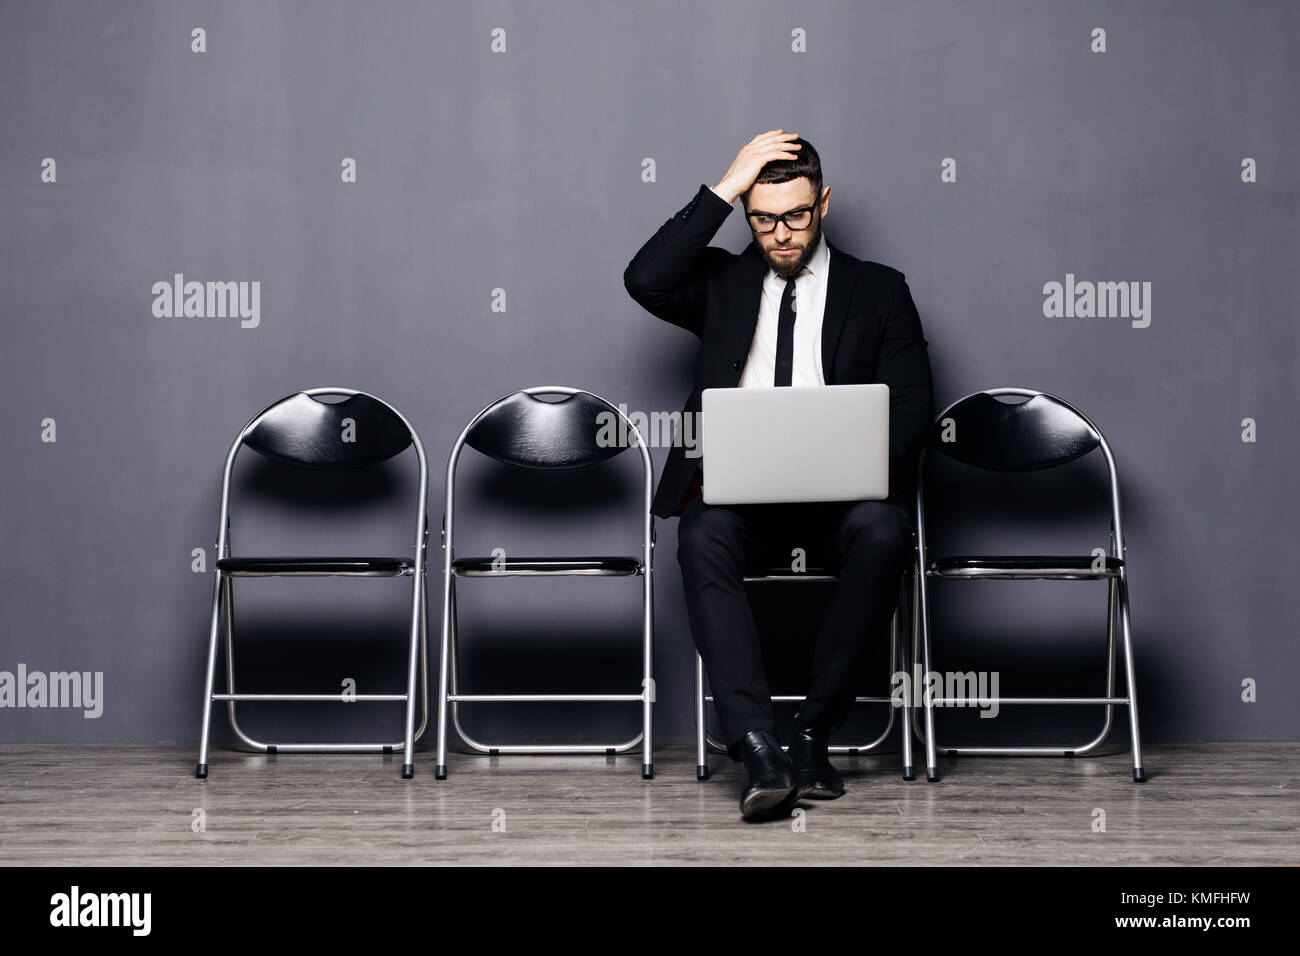 Young man sitting on chair avec ordinateur portable et en attente d'entrevue d'emploi Photo Stock